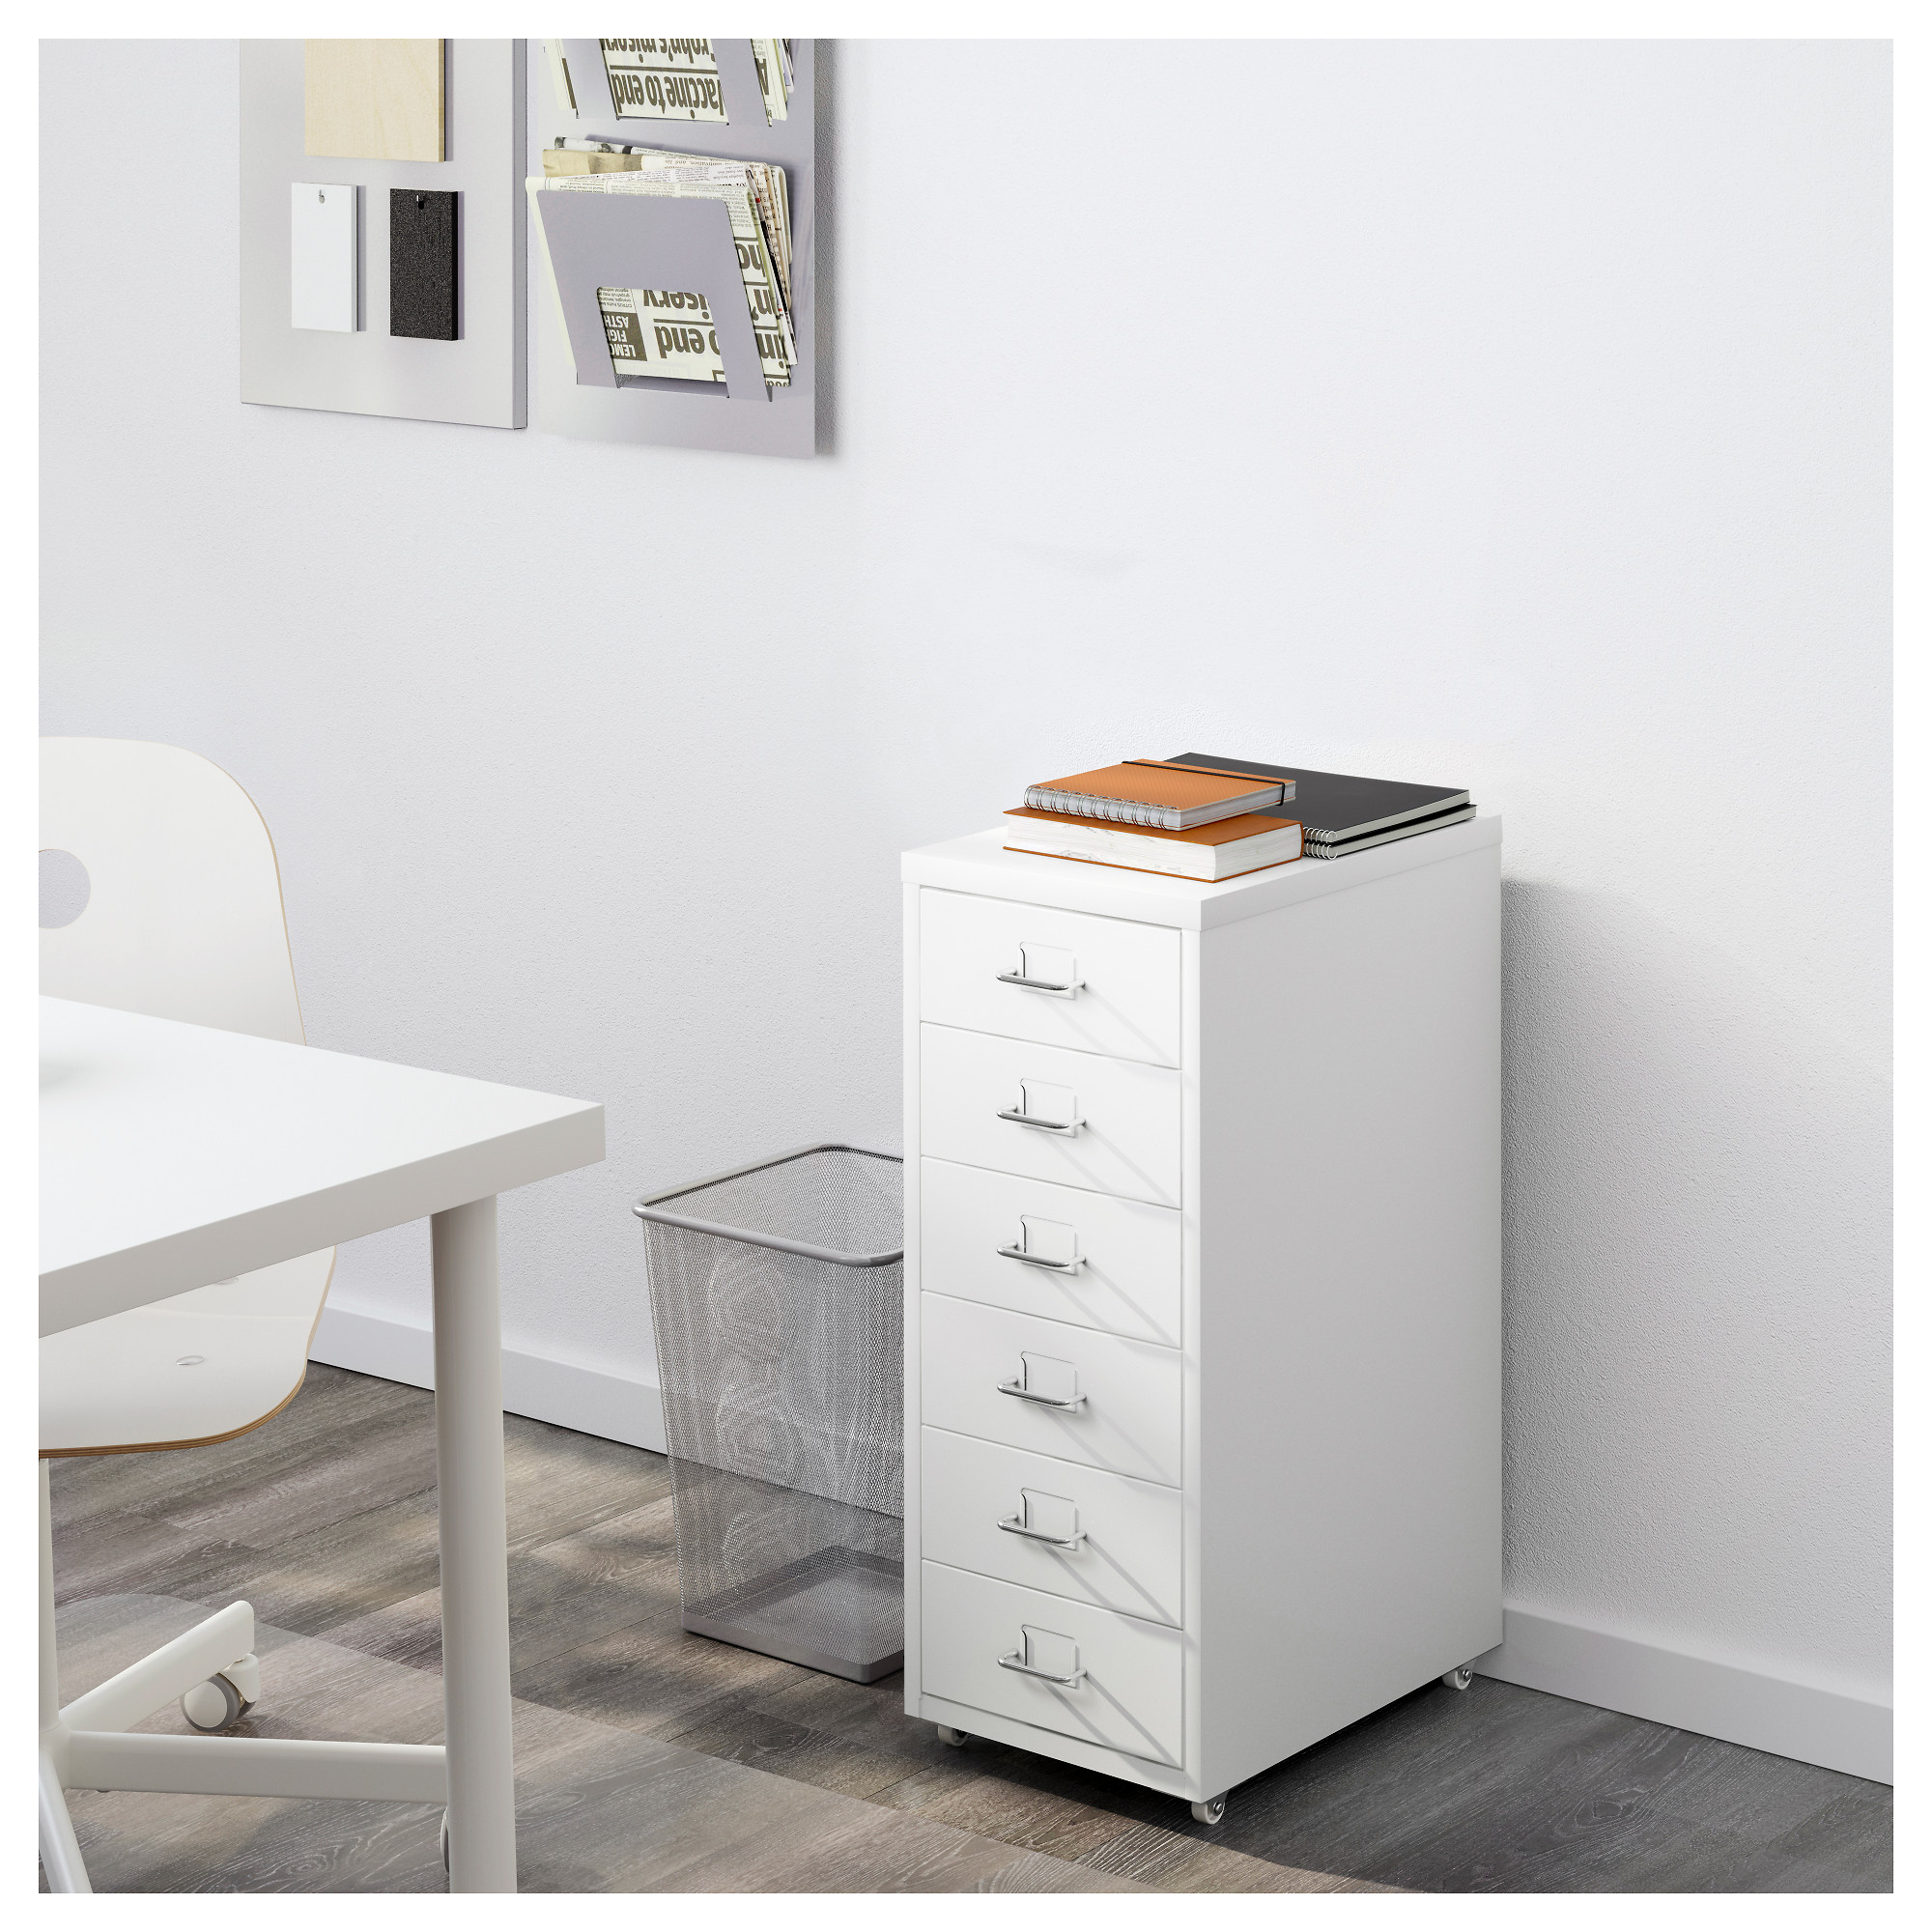 & HELMER Drawer unit on casters - white - IKEA